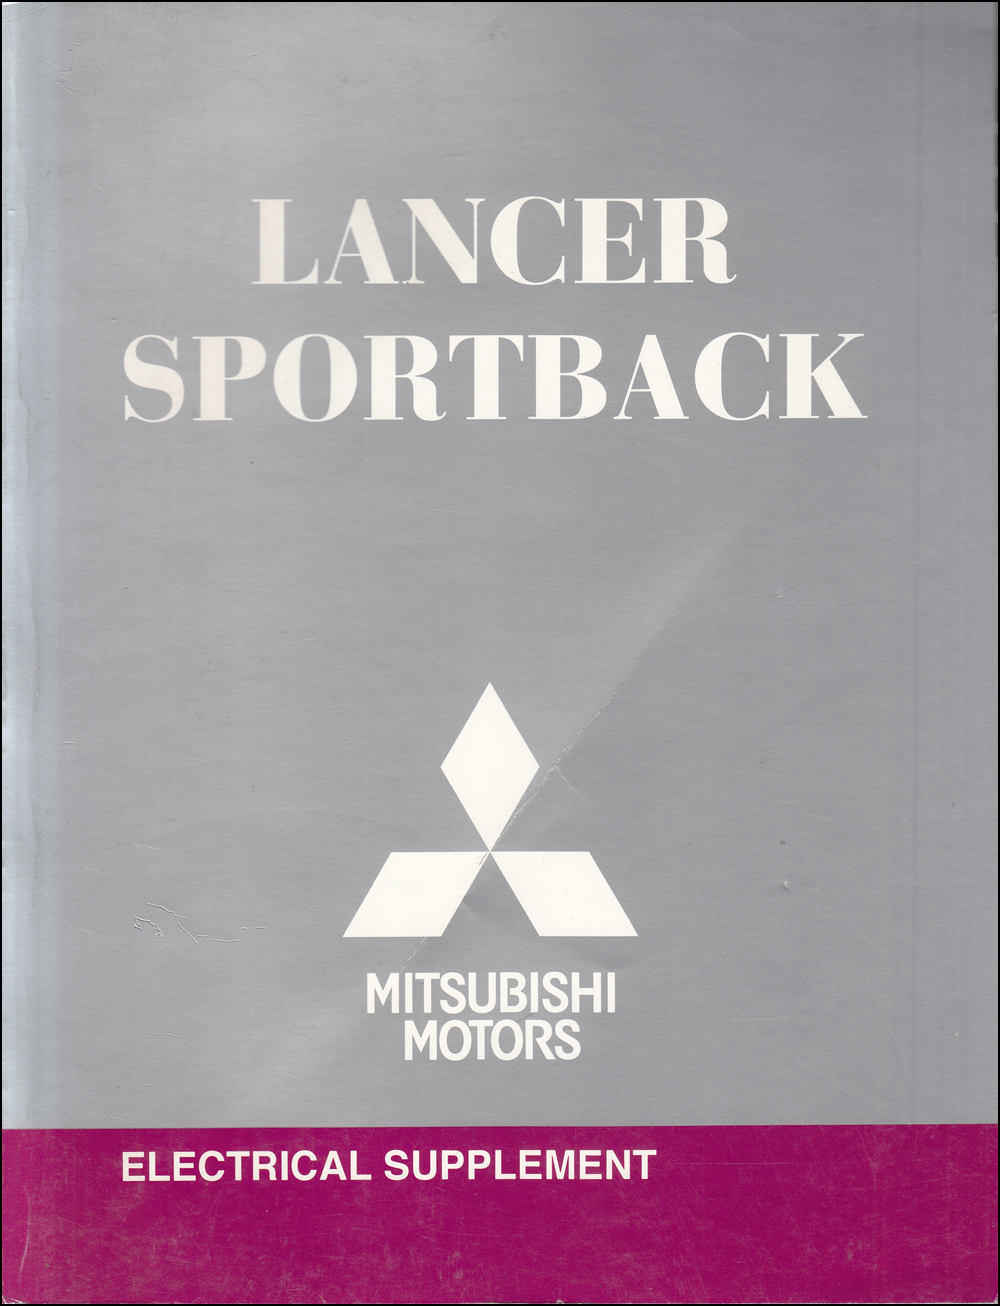 2010 Mitsubishi Lancer Sportback Electrical Wiring Diagram Manual Original